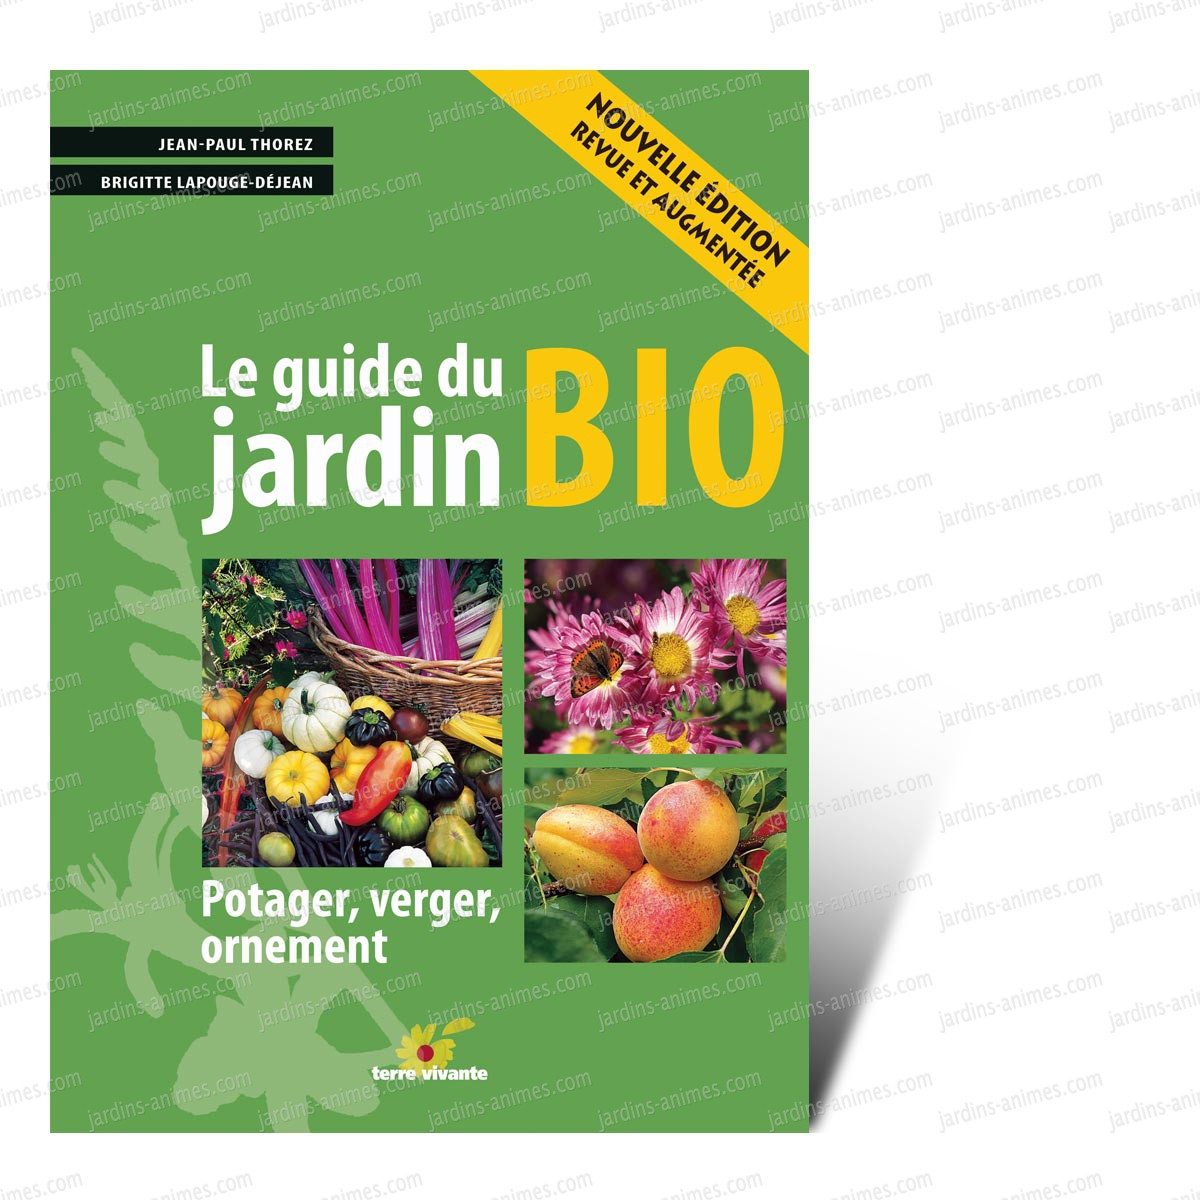 le guide du jardin bio potager verger ornement livres jardin bio. Black Bedroom Furniture Sets. Home Design Ideas